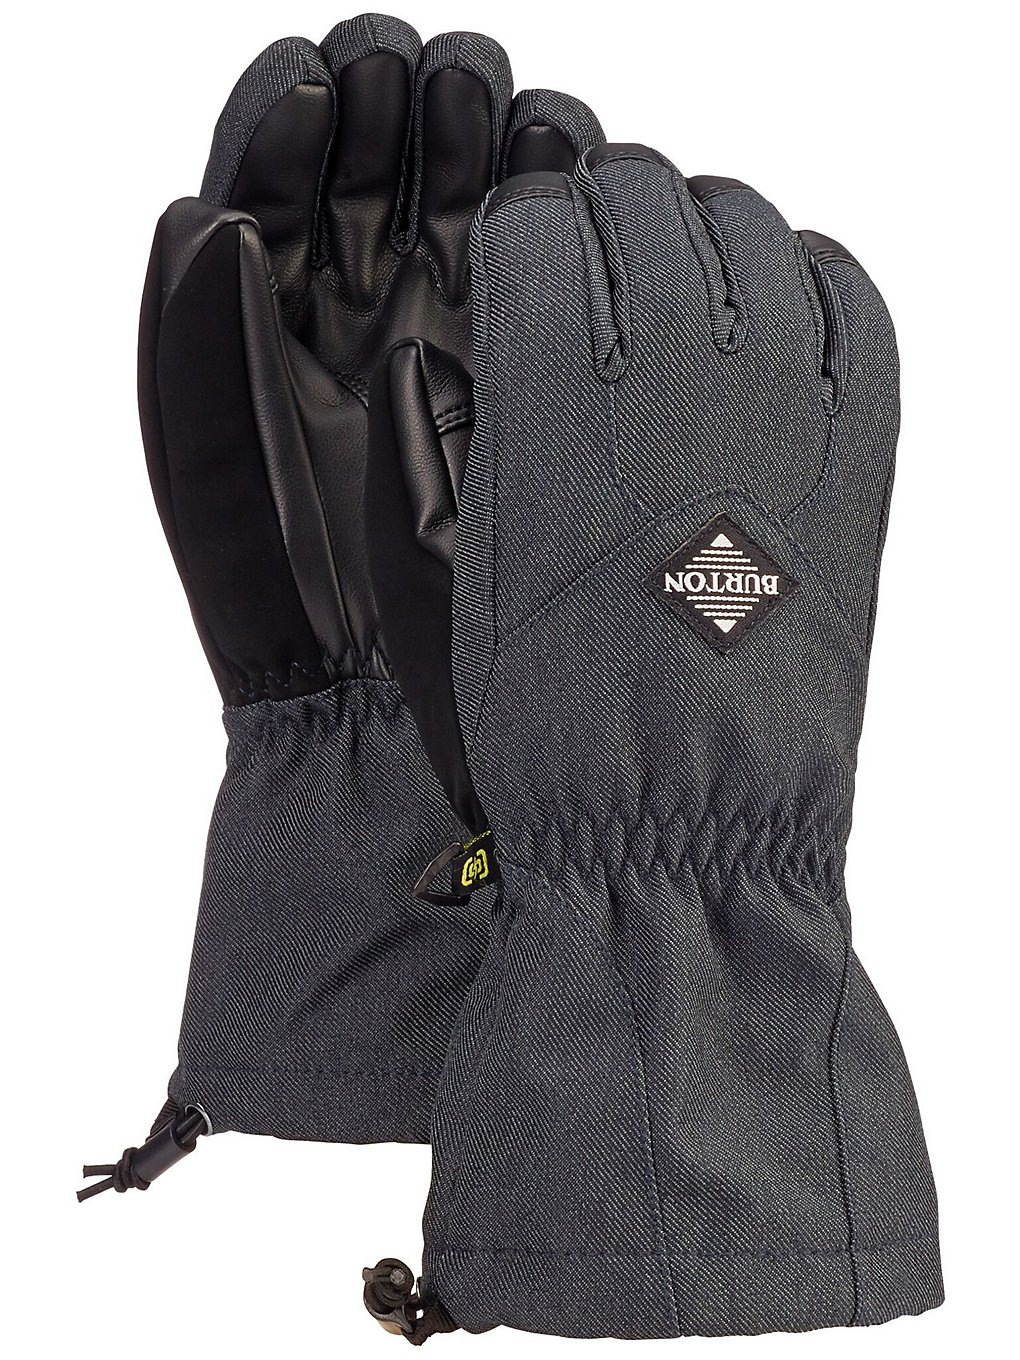 Image of Burton Profile Gloves nero